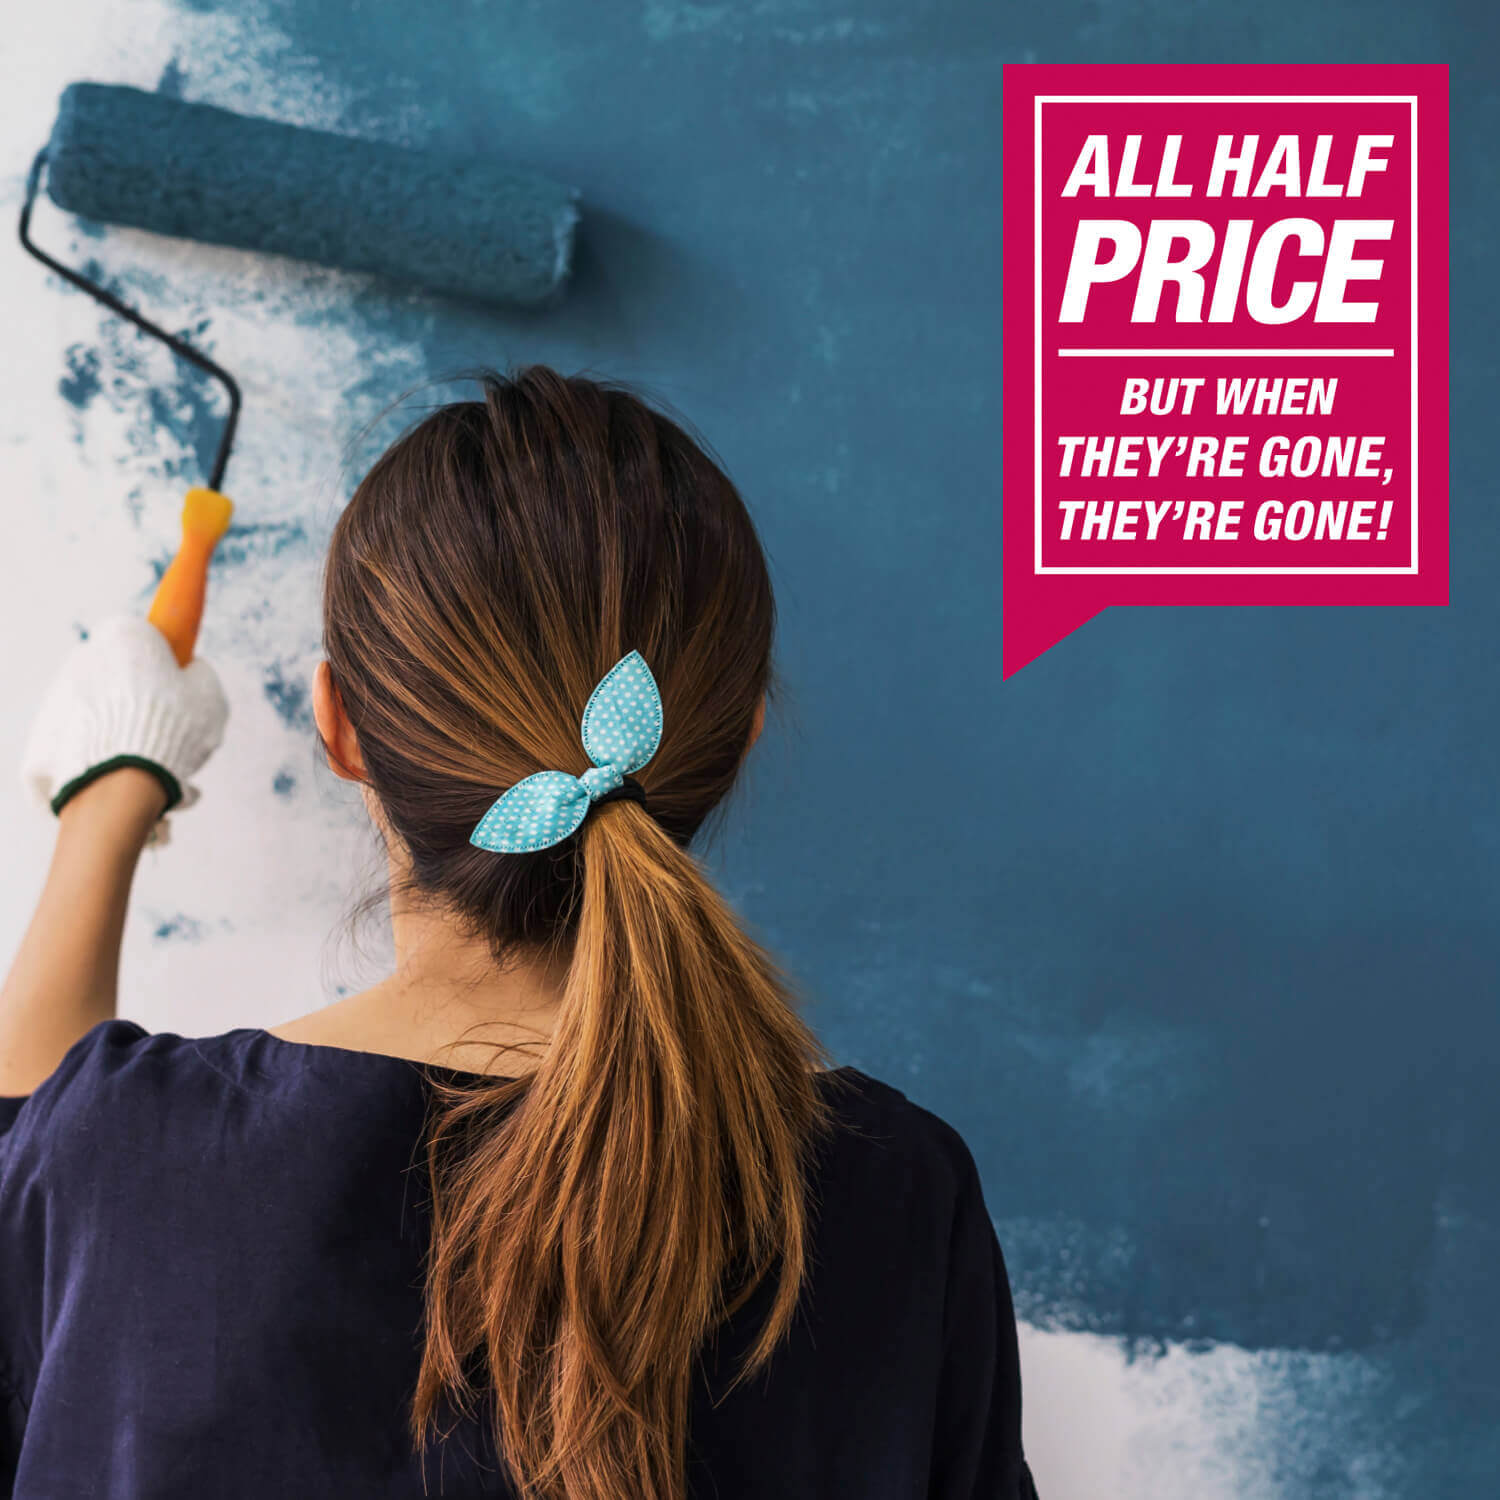 Diy Bank Holiday Offers Special Offers Best Deals Offers Home Store More